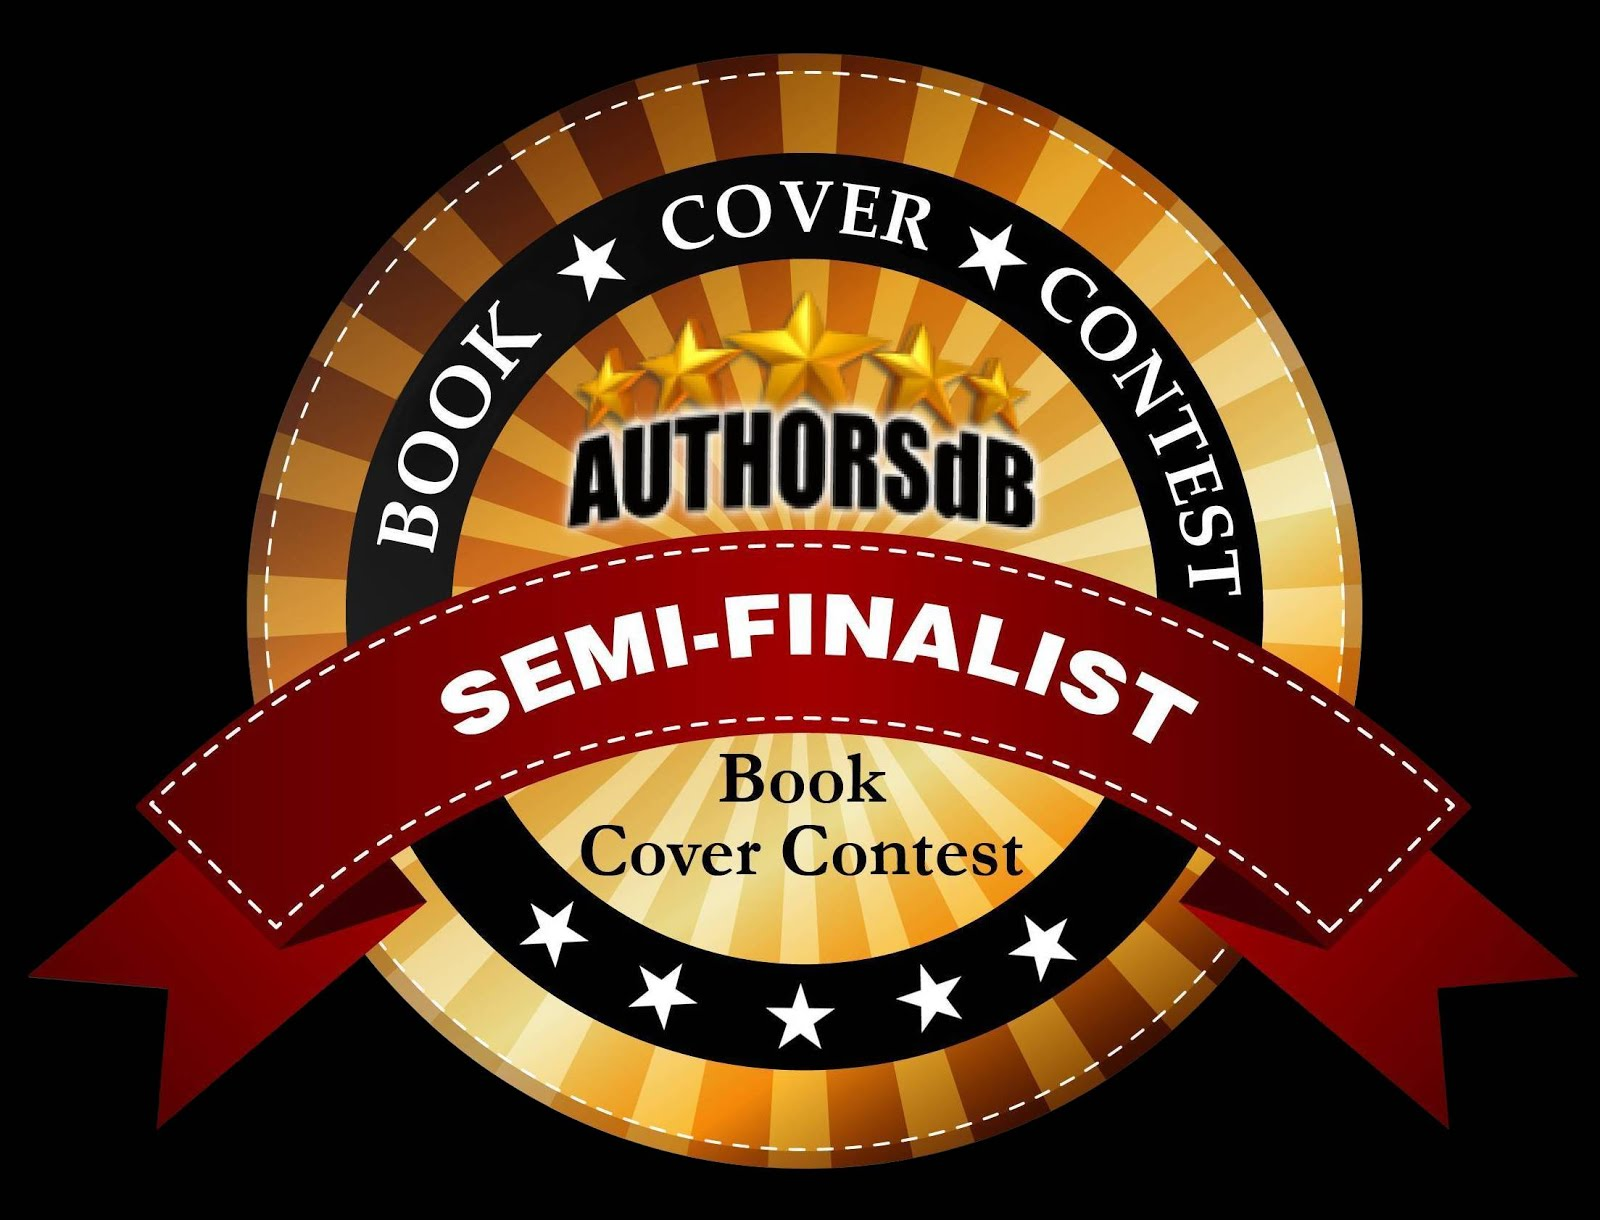 Semi finalist Authors db Cover Contest